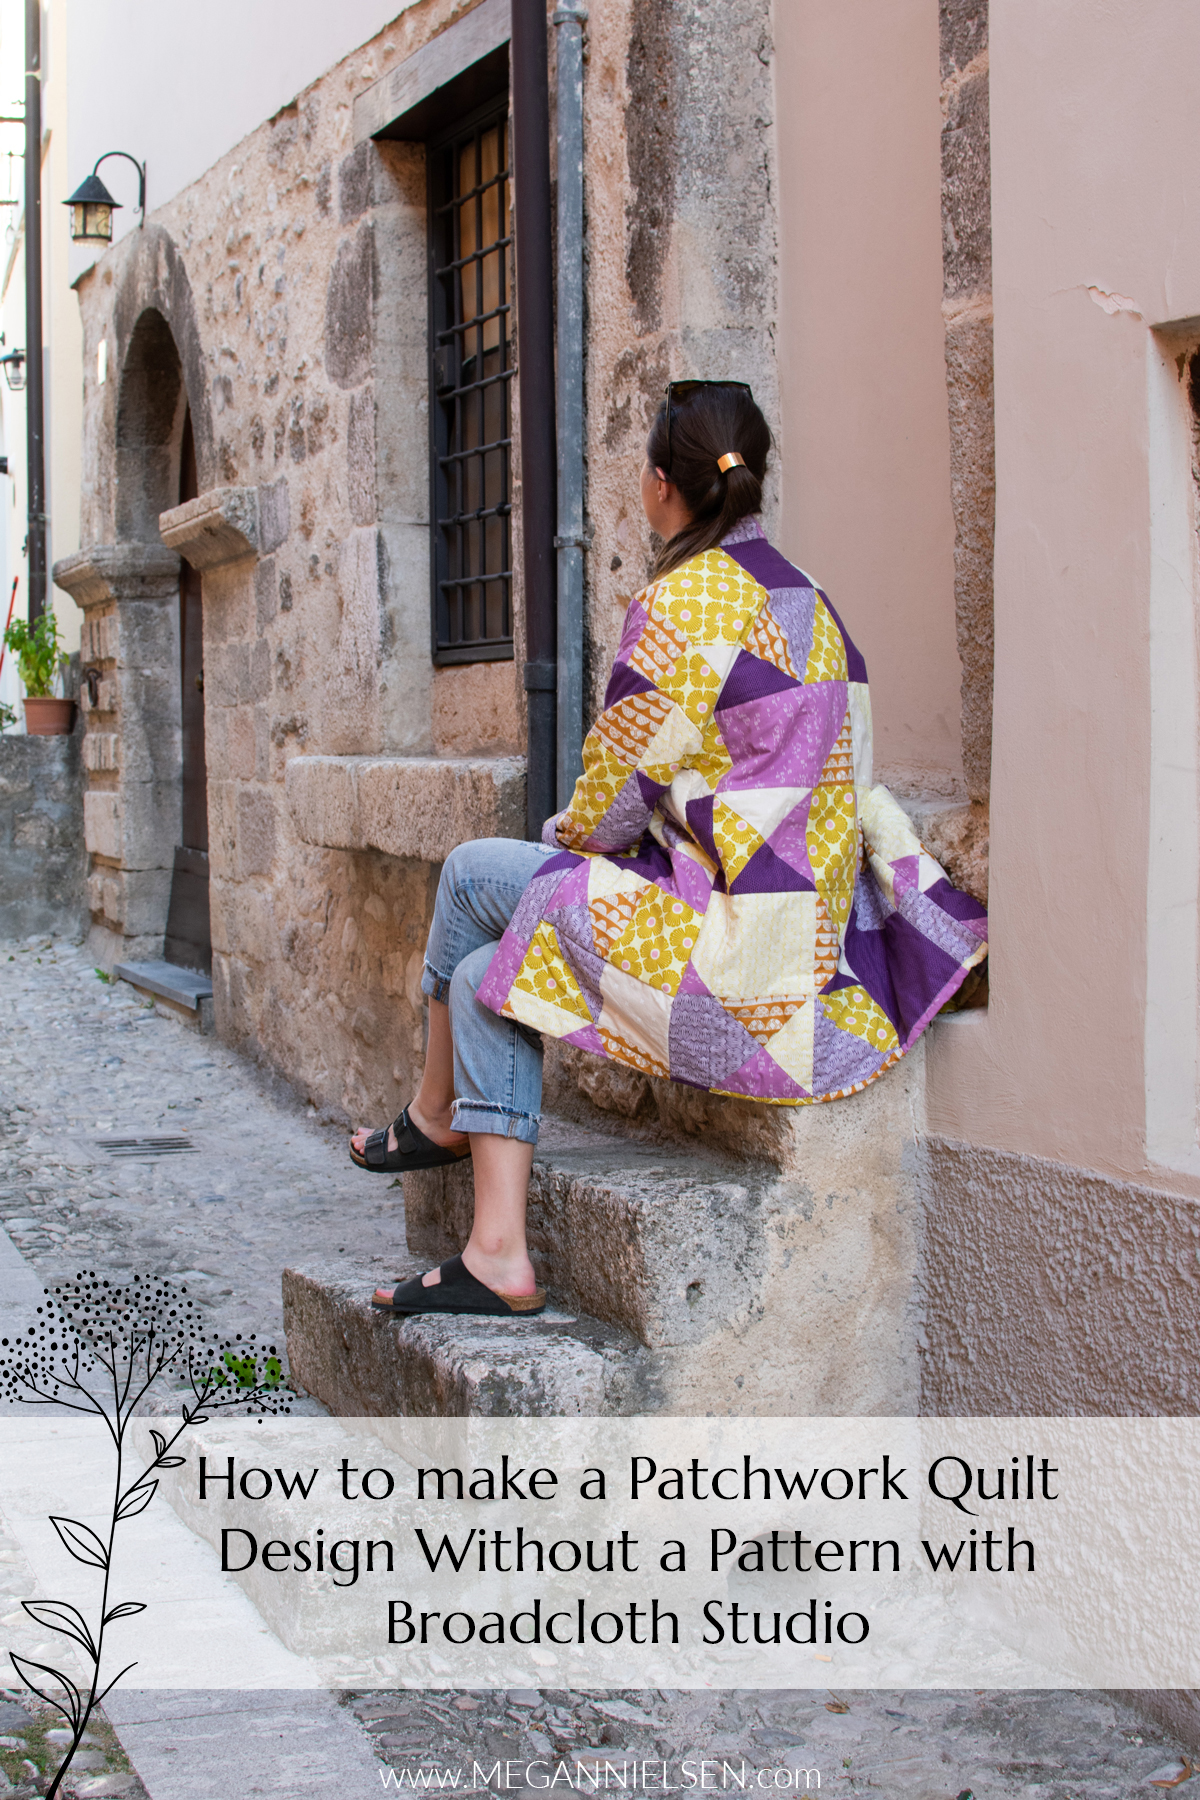 How to make a patchwork quilt without pattern